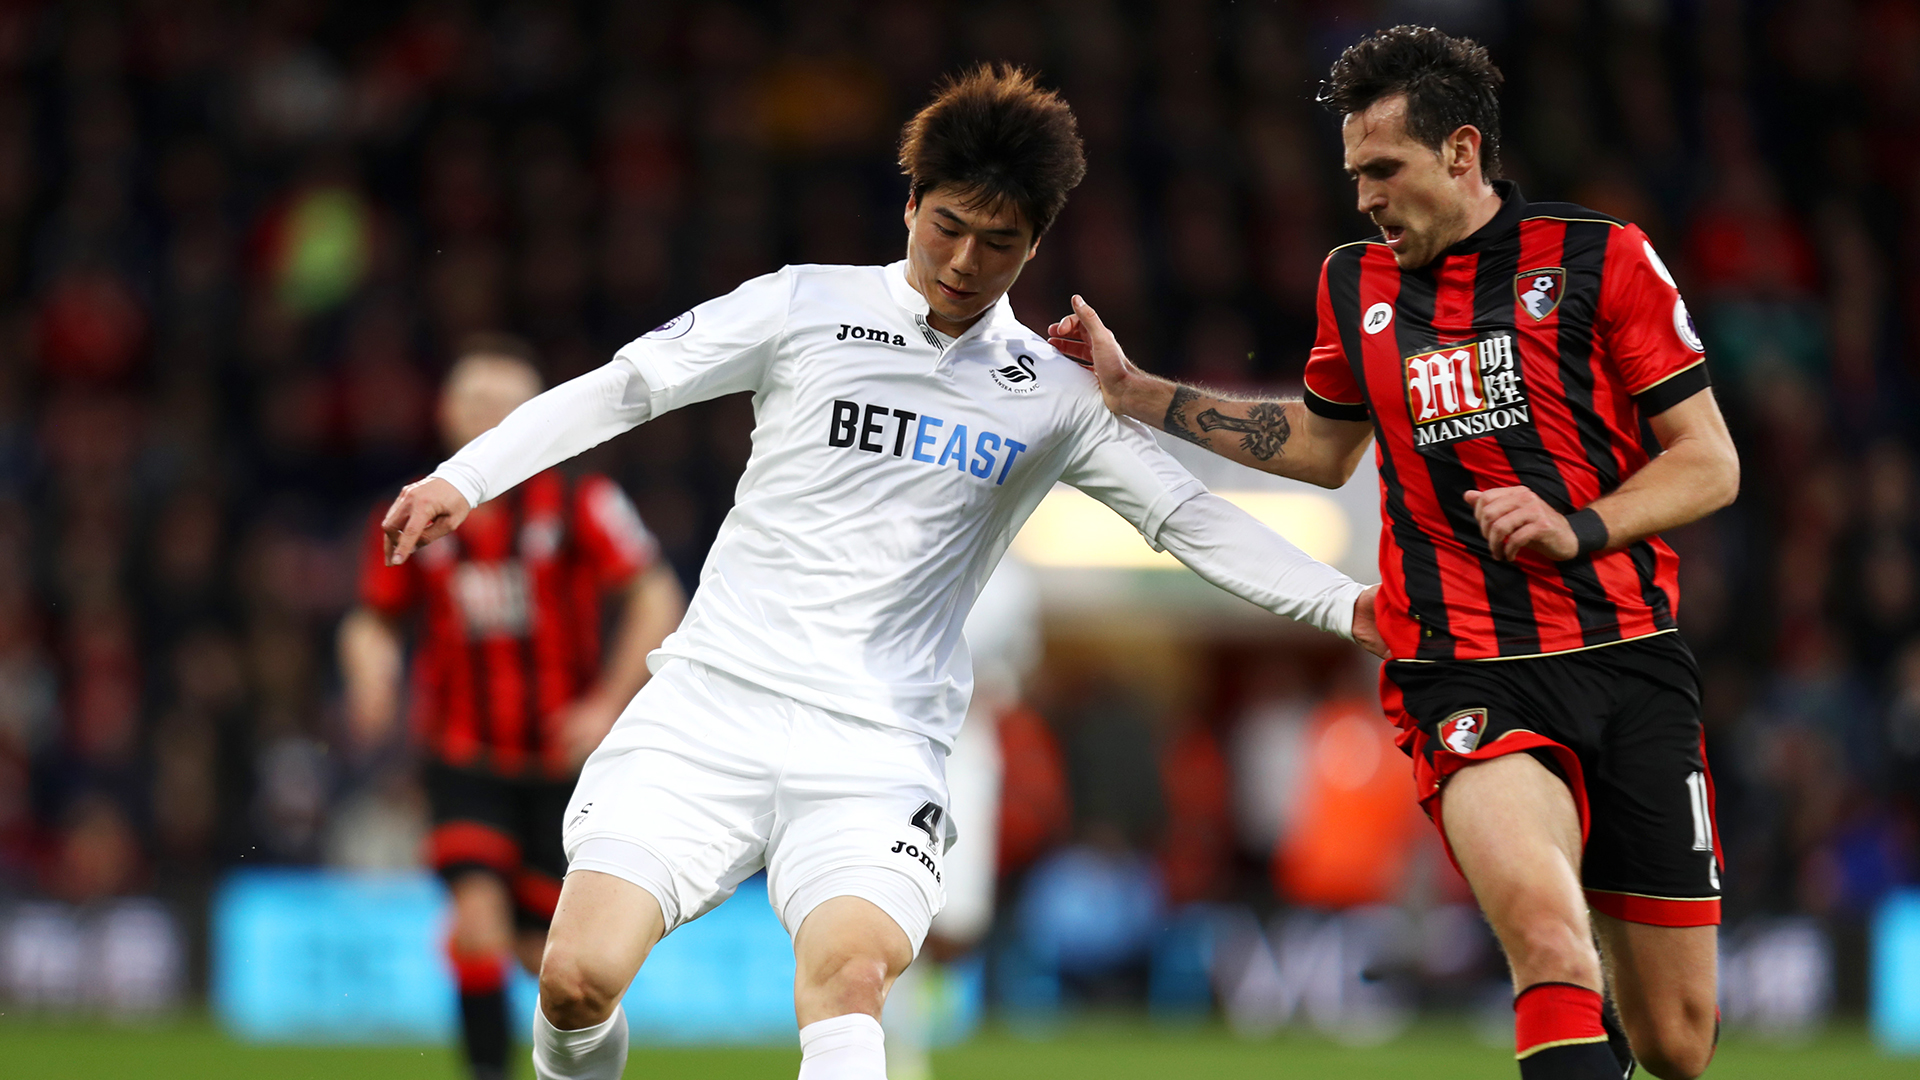 Ki Sung-Yueng Swansea City